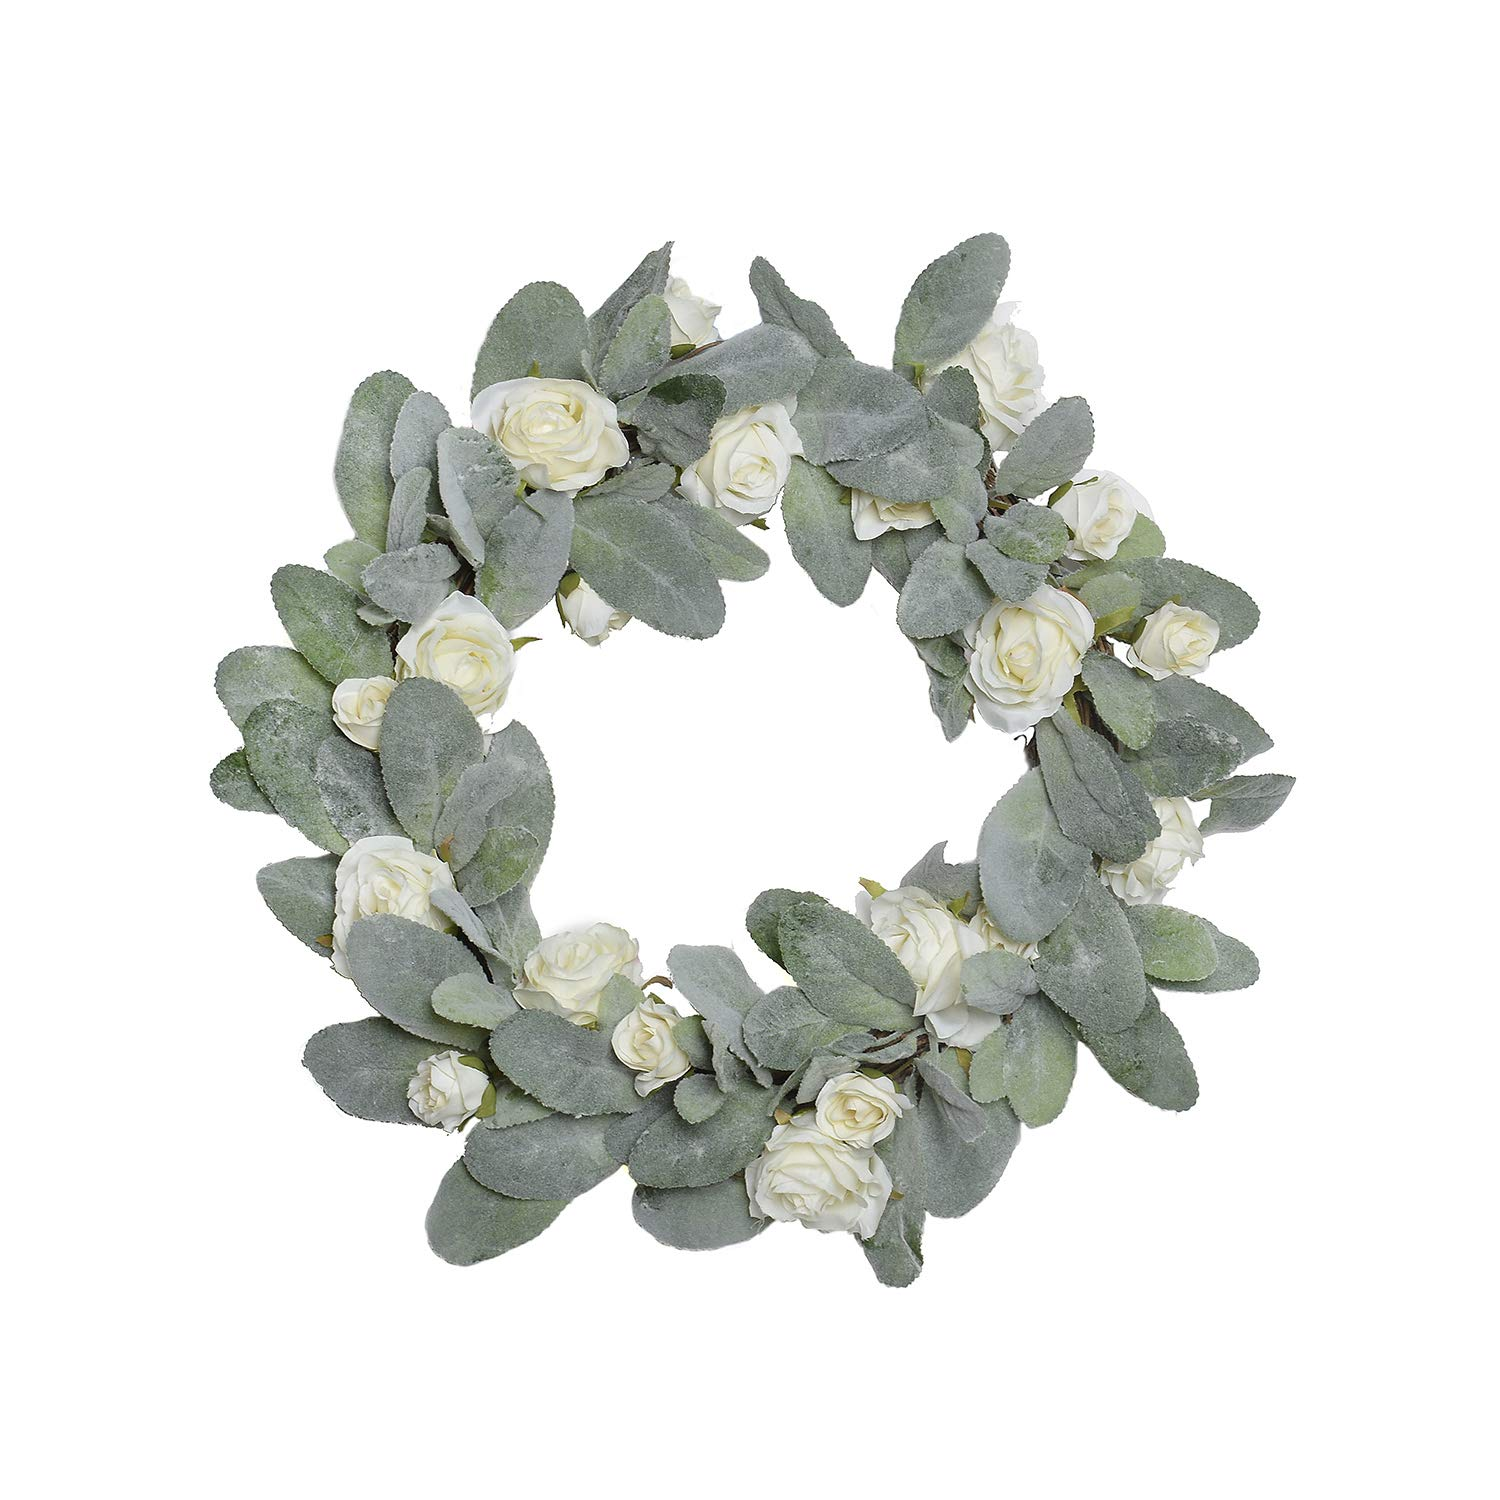 FAVOWREATH Vitality Series FAVO-W101 Handmade 15 inch Green Laurel/Eucalyptus Leaf,Roses Grapevine Wreath for Summer/Fall Festival Front Door/Wall/Fireplace Every Day Nearly Natural Home Hanger Decor